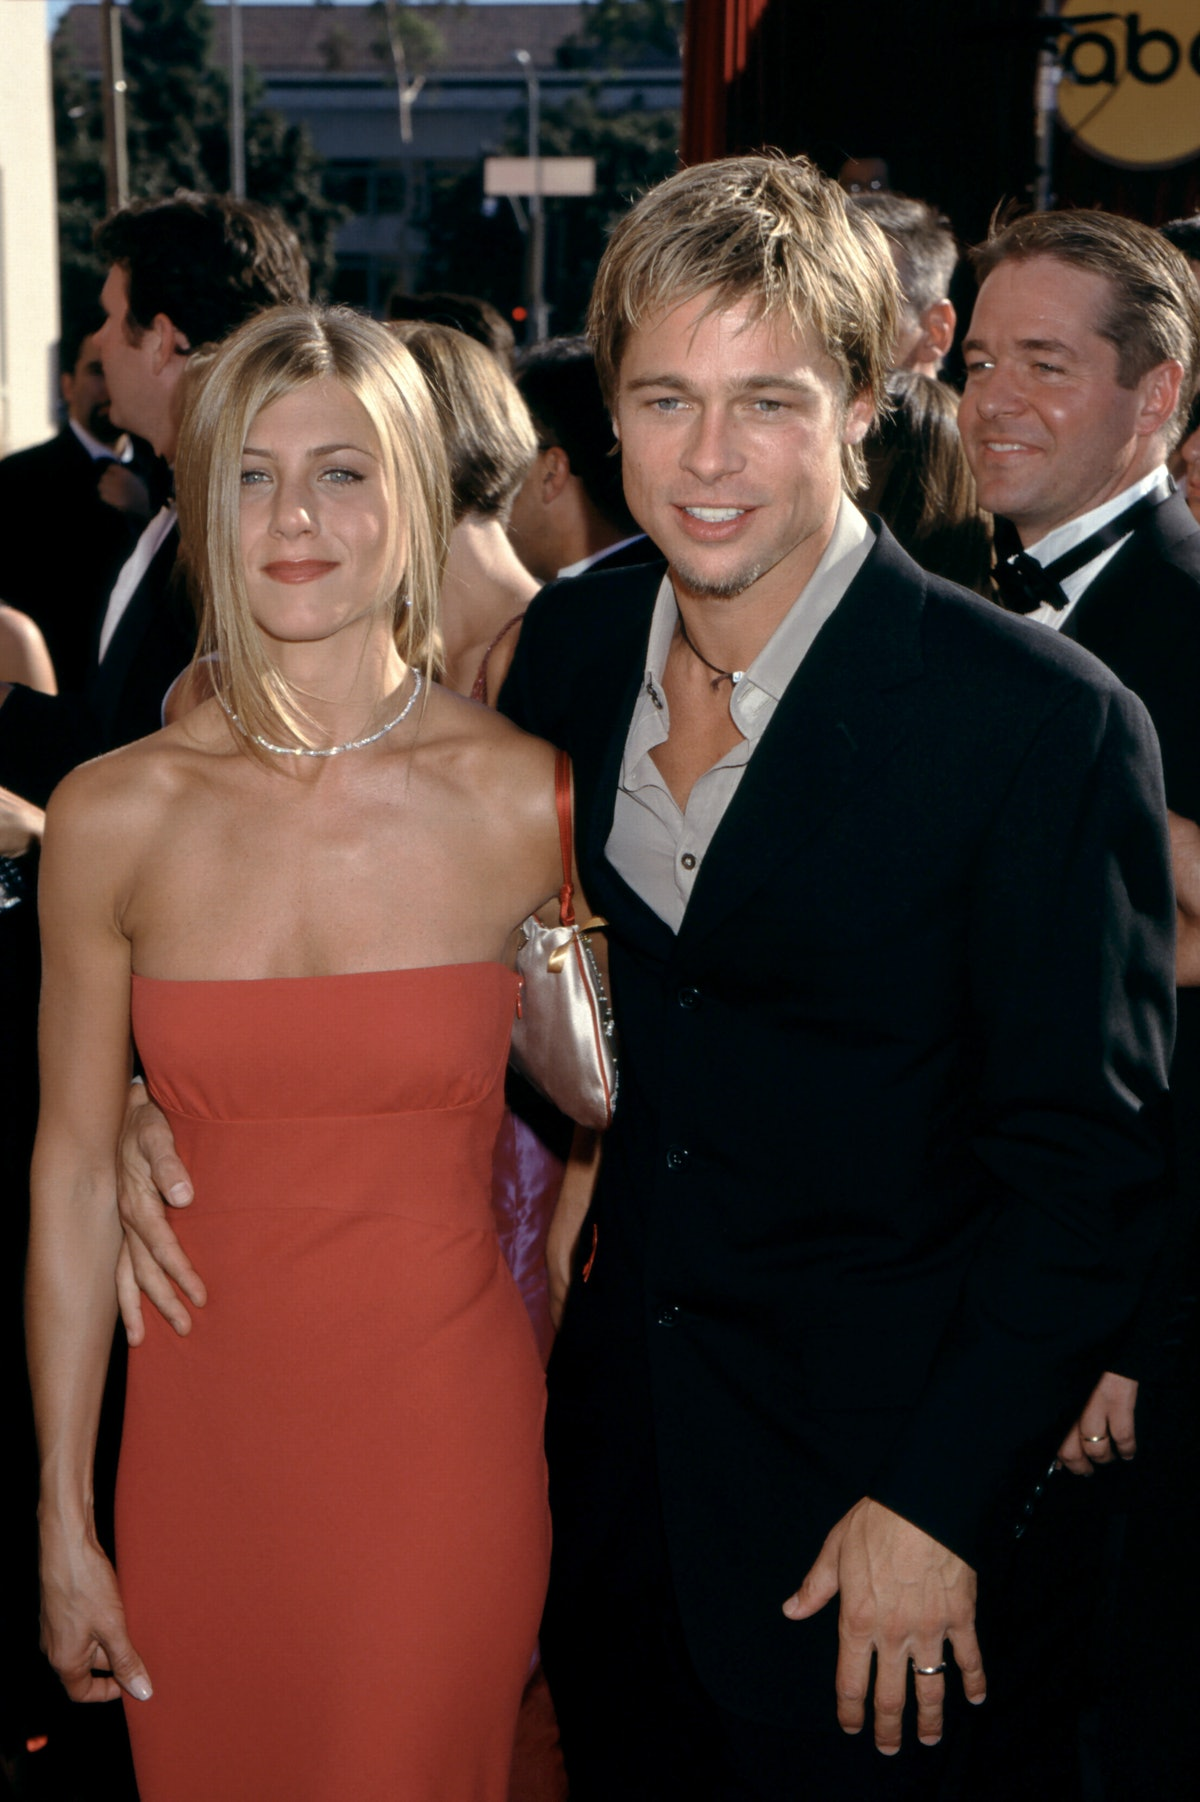 LOS ANGELES, CA - SEPTEMBER 10: Actor Brad Pitt and wife actress Jennifer Aniston arrive at the 52nd...